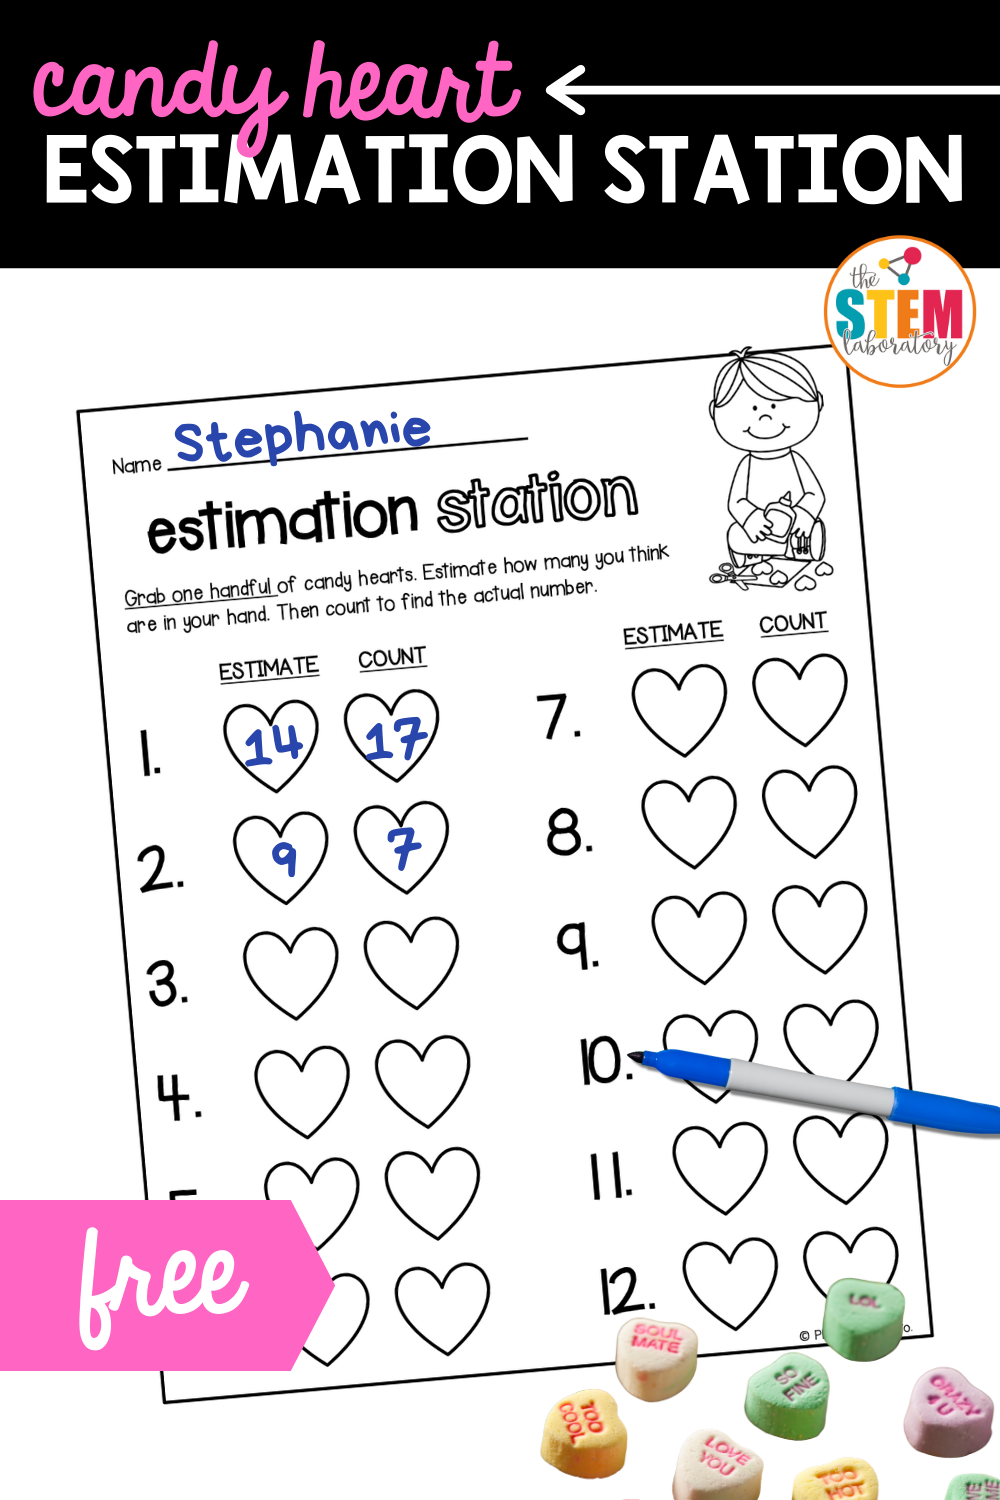 Candy Heart Estimation Station Sheet